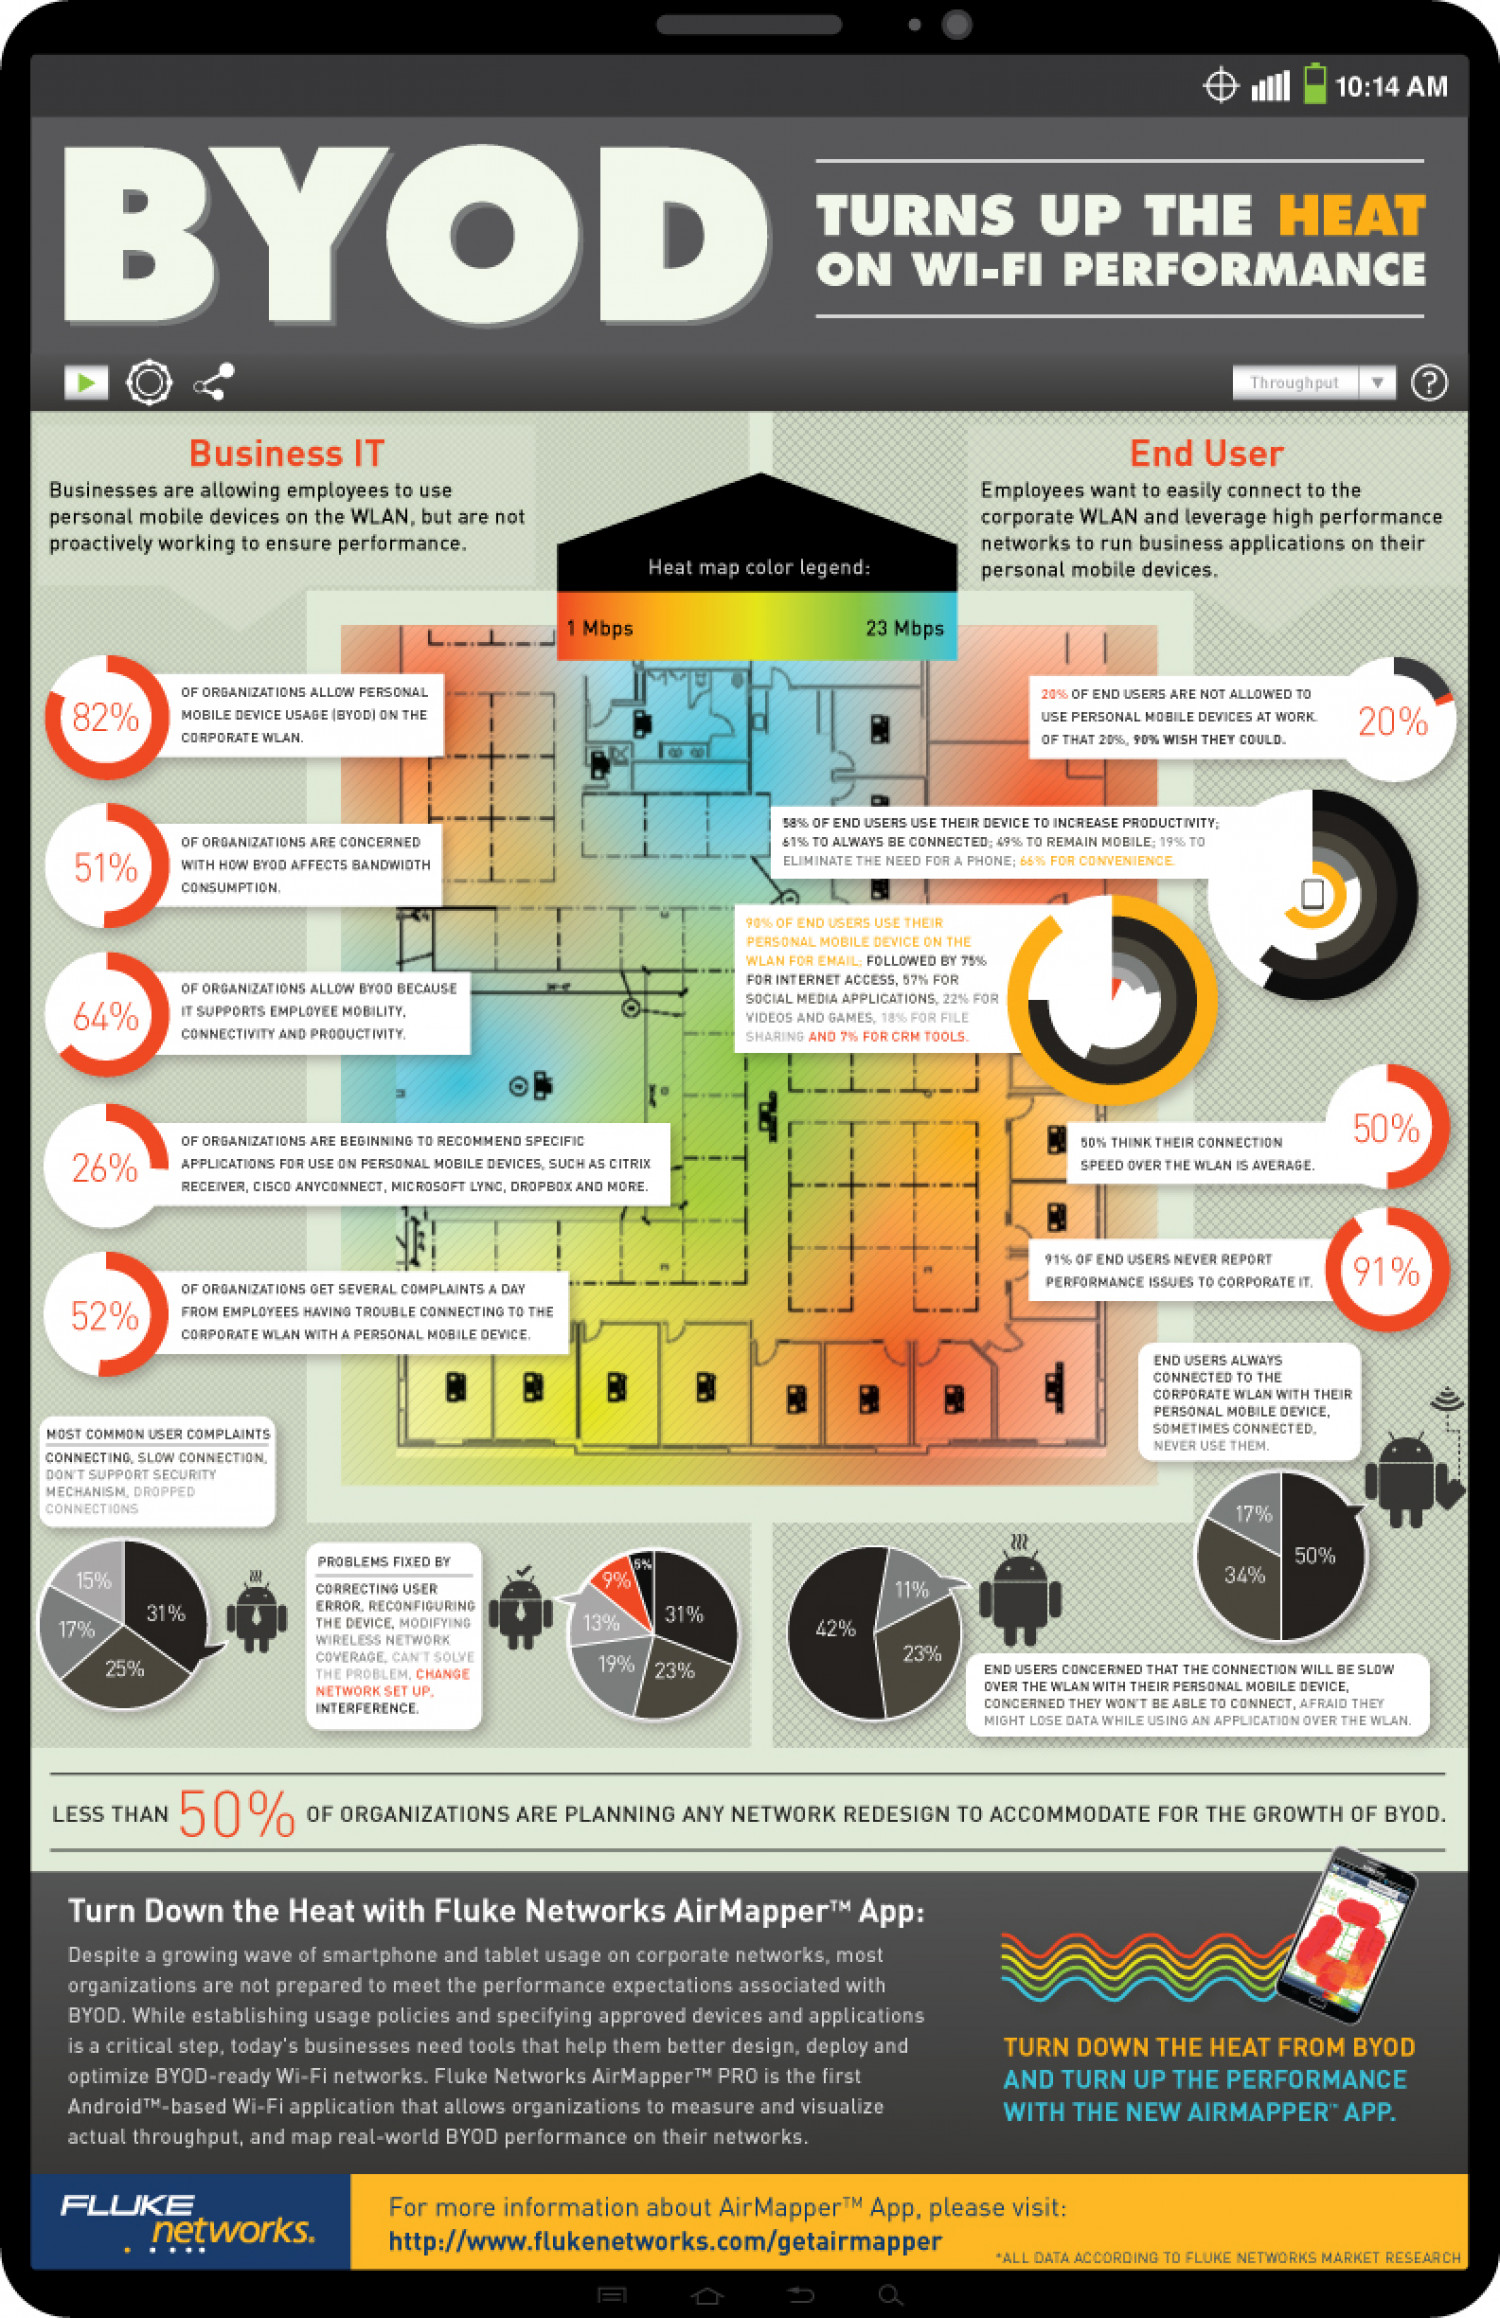 BYOD Turns Up the Heat on Wi-Fi Performance Infographic